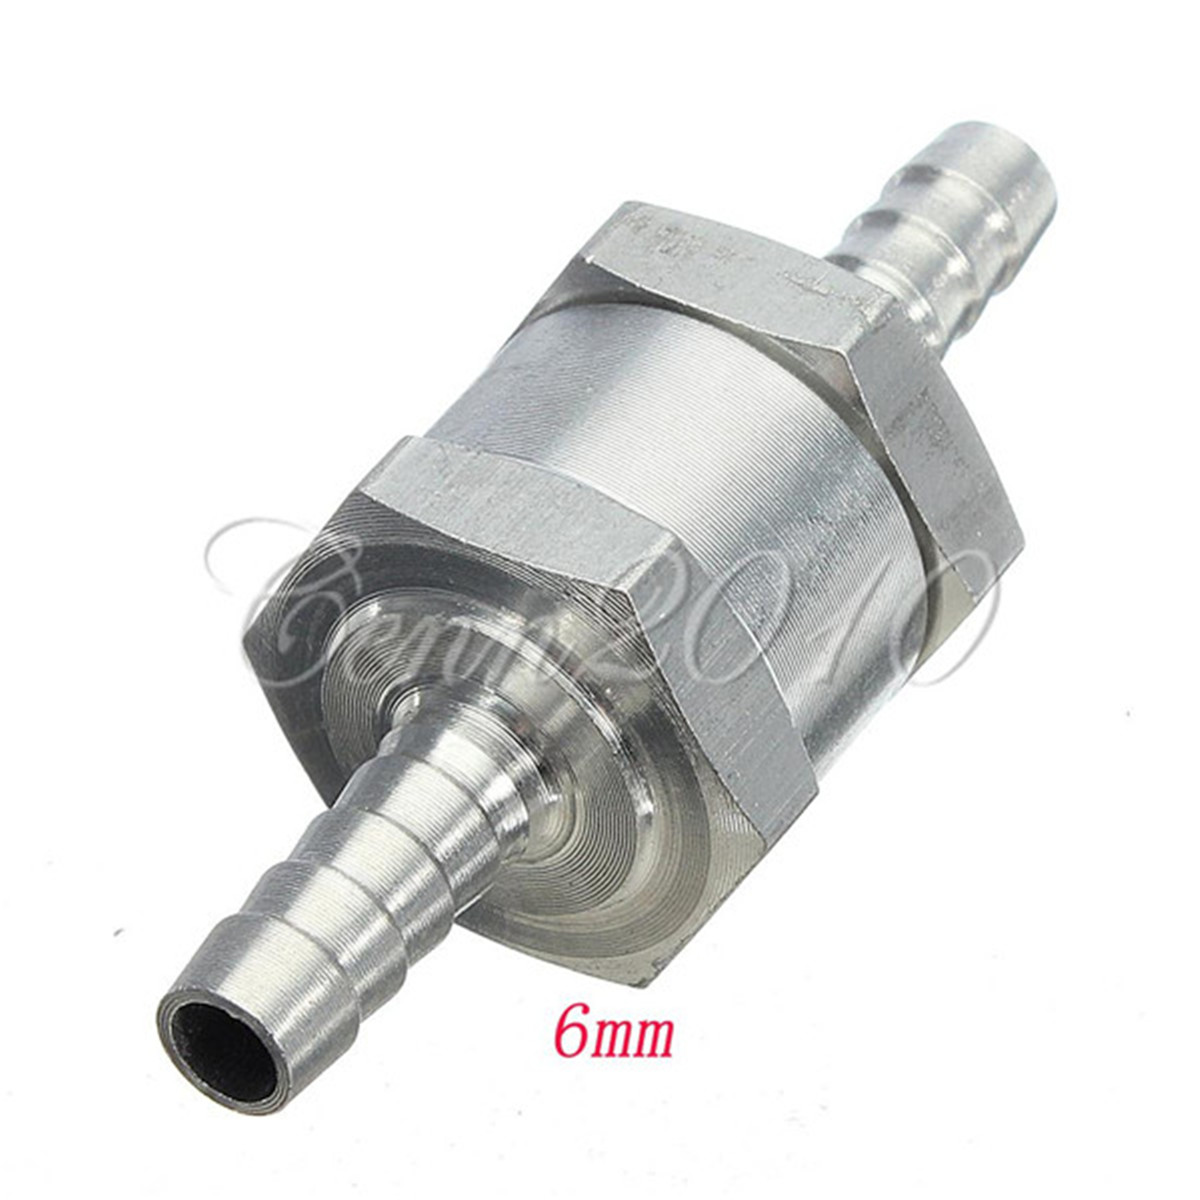 6mm Aluminium Chrome Alloy Fuel Non Return Check Valve One Way Petrol For Diesel non return valve ozone check valve pvdf material resistant ozone